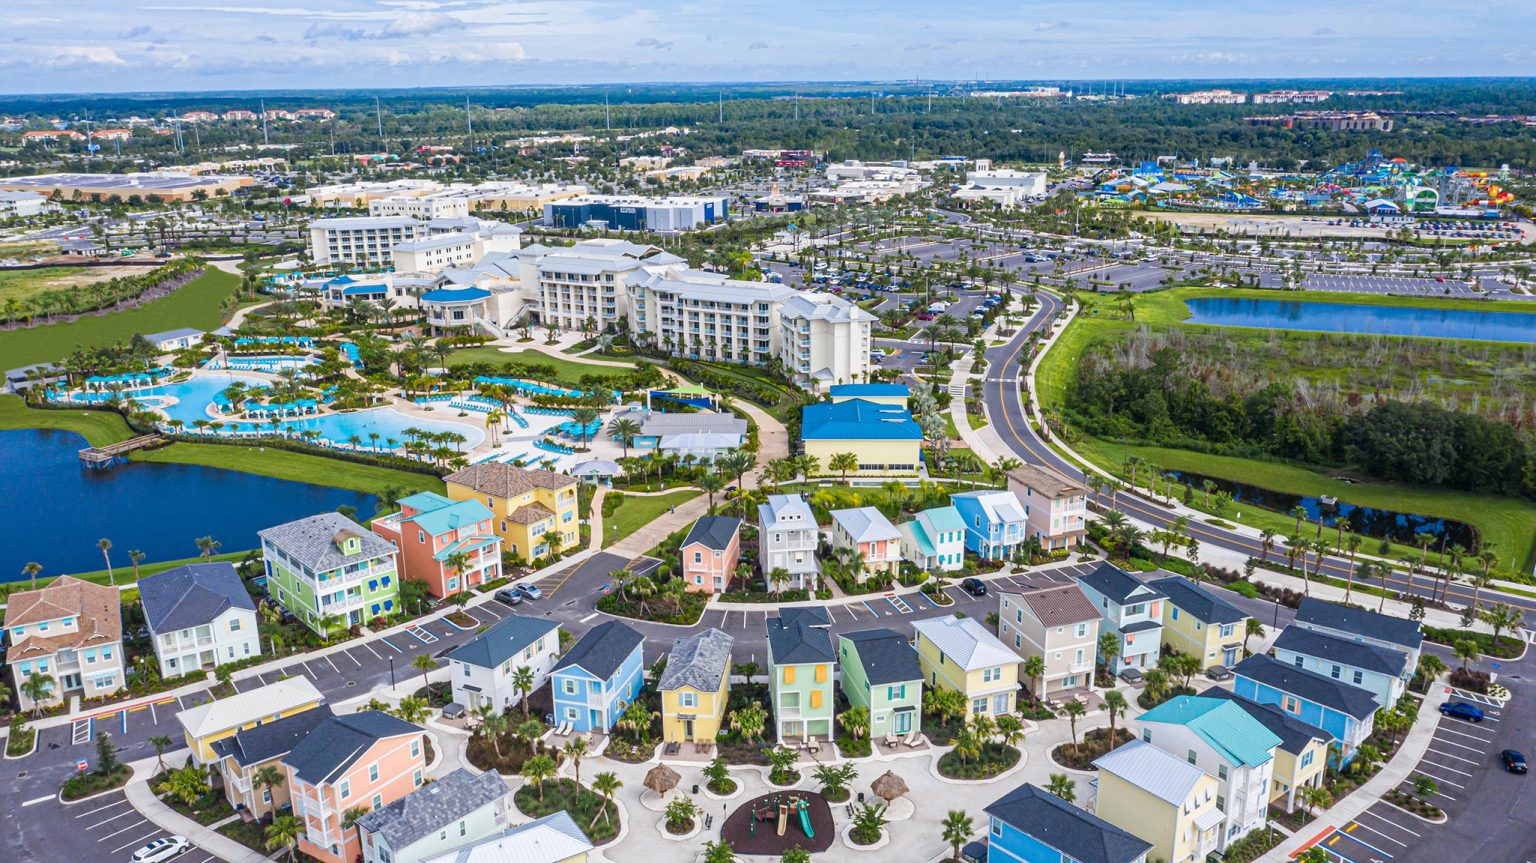 Aerial view of Margaritaville Resort Orlando and Margaritaville Cottages Orlando.